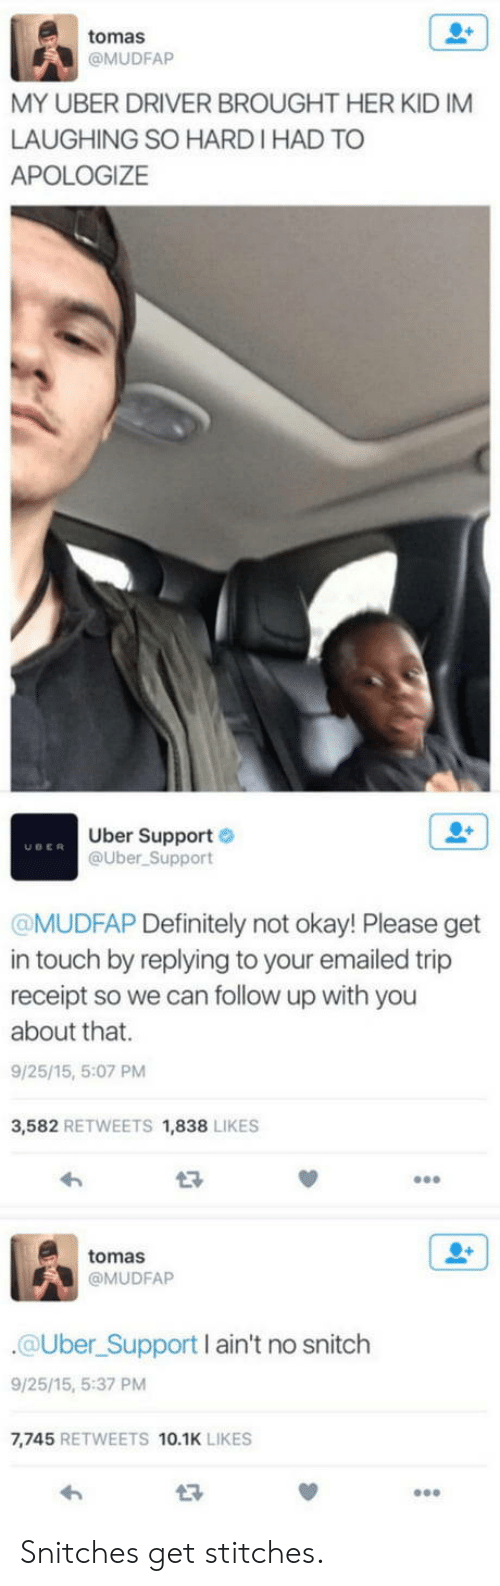 Stitches: tomas  @MUDFAP  MY UBER DRIVER BROUGHT HER KID IM  LAUGHING SO HARD I HAD TO  APOLOGIZE  Uber Support  @Uber Support  UDER  MUDFAP Definitely not okay! Please get  in touch by replying to your emailed trip  receipt so we can follow up with you  about that.  9/25/15, 5:07 PM  3,582 RETWEETS 1,838 LIKES  tomas  @MUDFAP  @Uber Support I ain't no snitclh  9/25/15, 5:37 PM  7,745 RETWEETS 10.1K LIKES  13 Snitches get stitches.